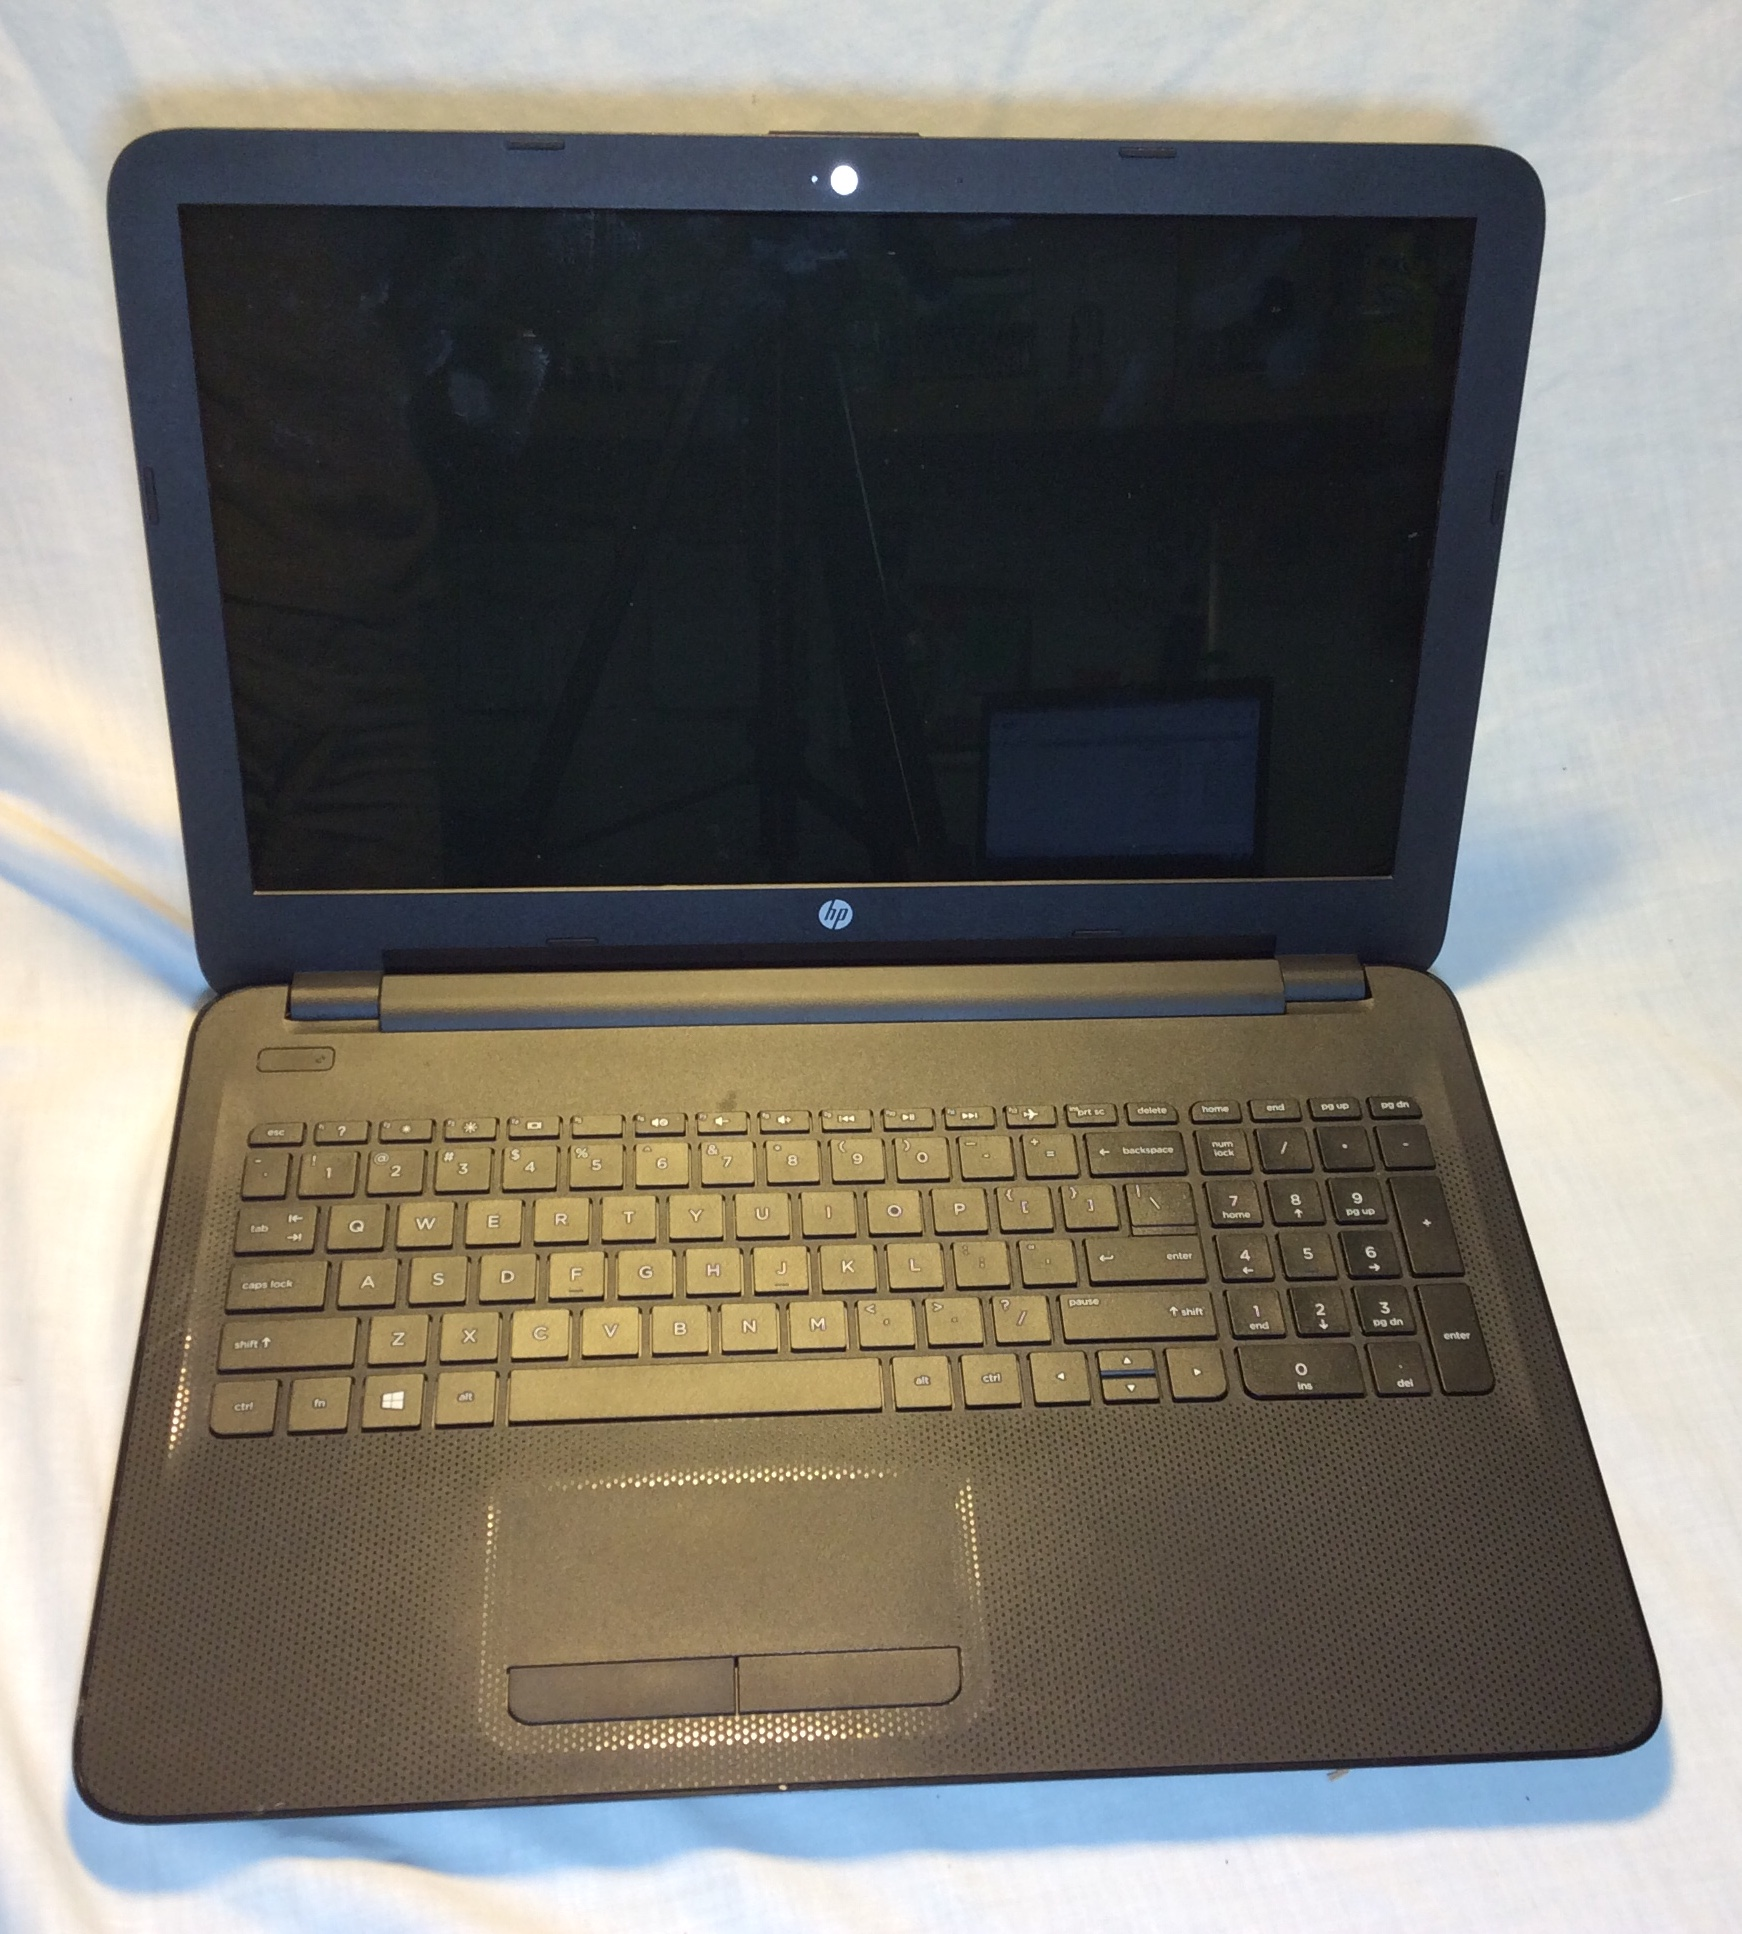 HP Laptop (works)